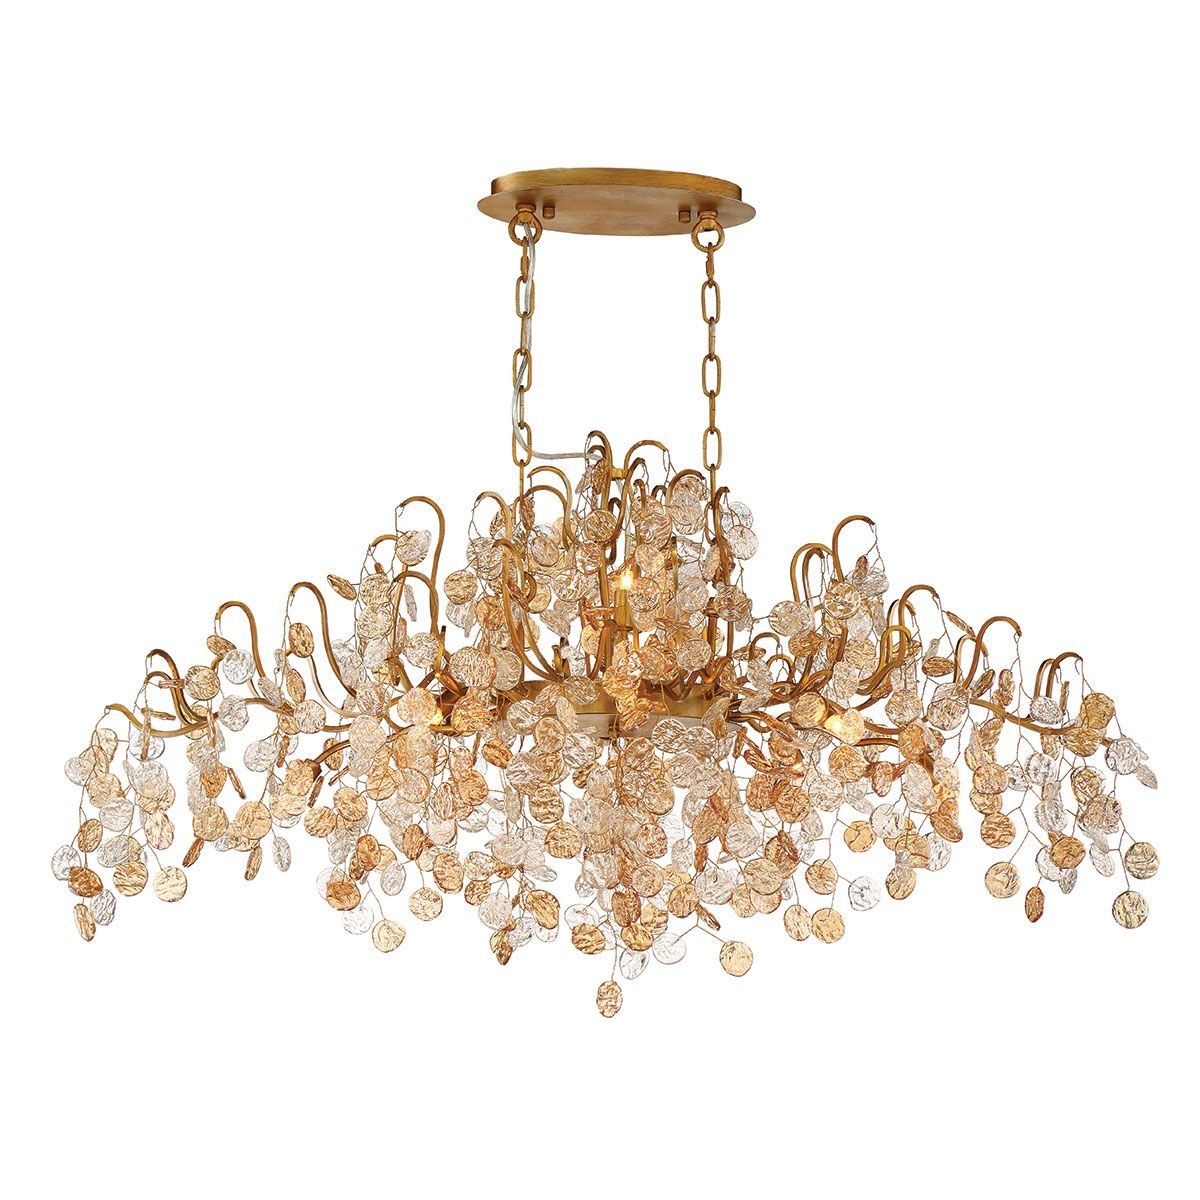 Campobasso 10 light oval chandelier chandeliers lights and bulbs campobasso 10 light oval chandelier arubaitofo Images